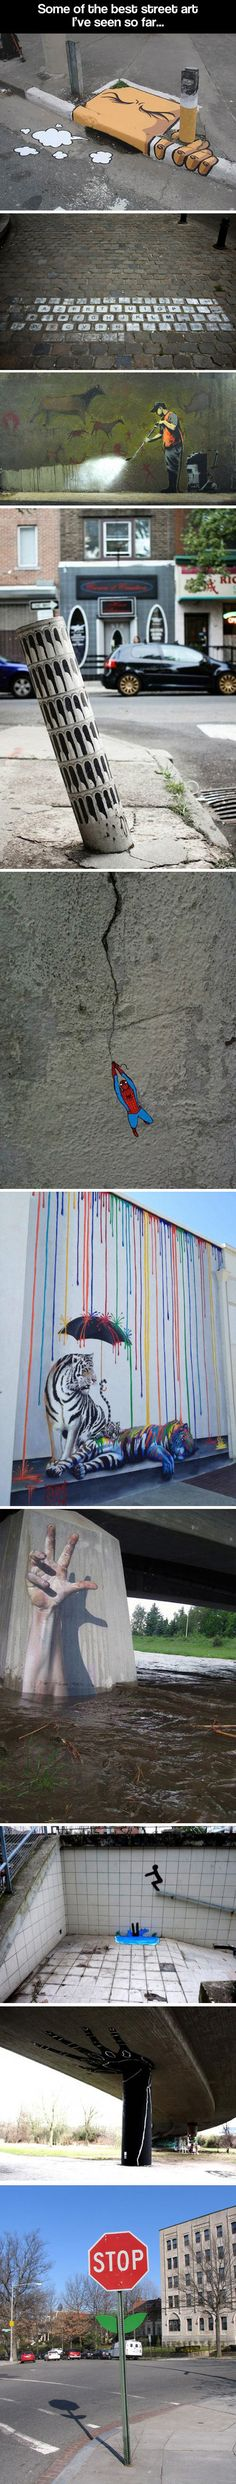 OakOak has produced some of the coolest and geekiest street art yet, here are a few examples of his work.